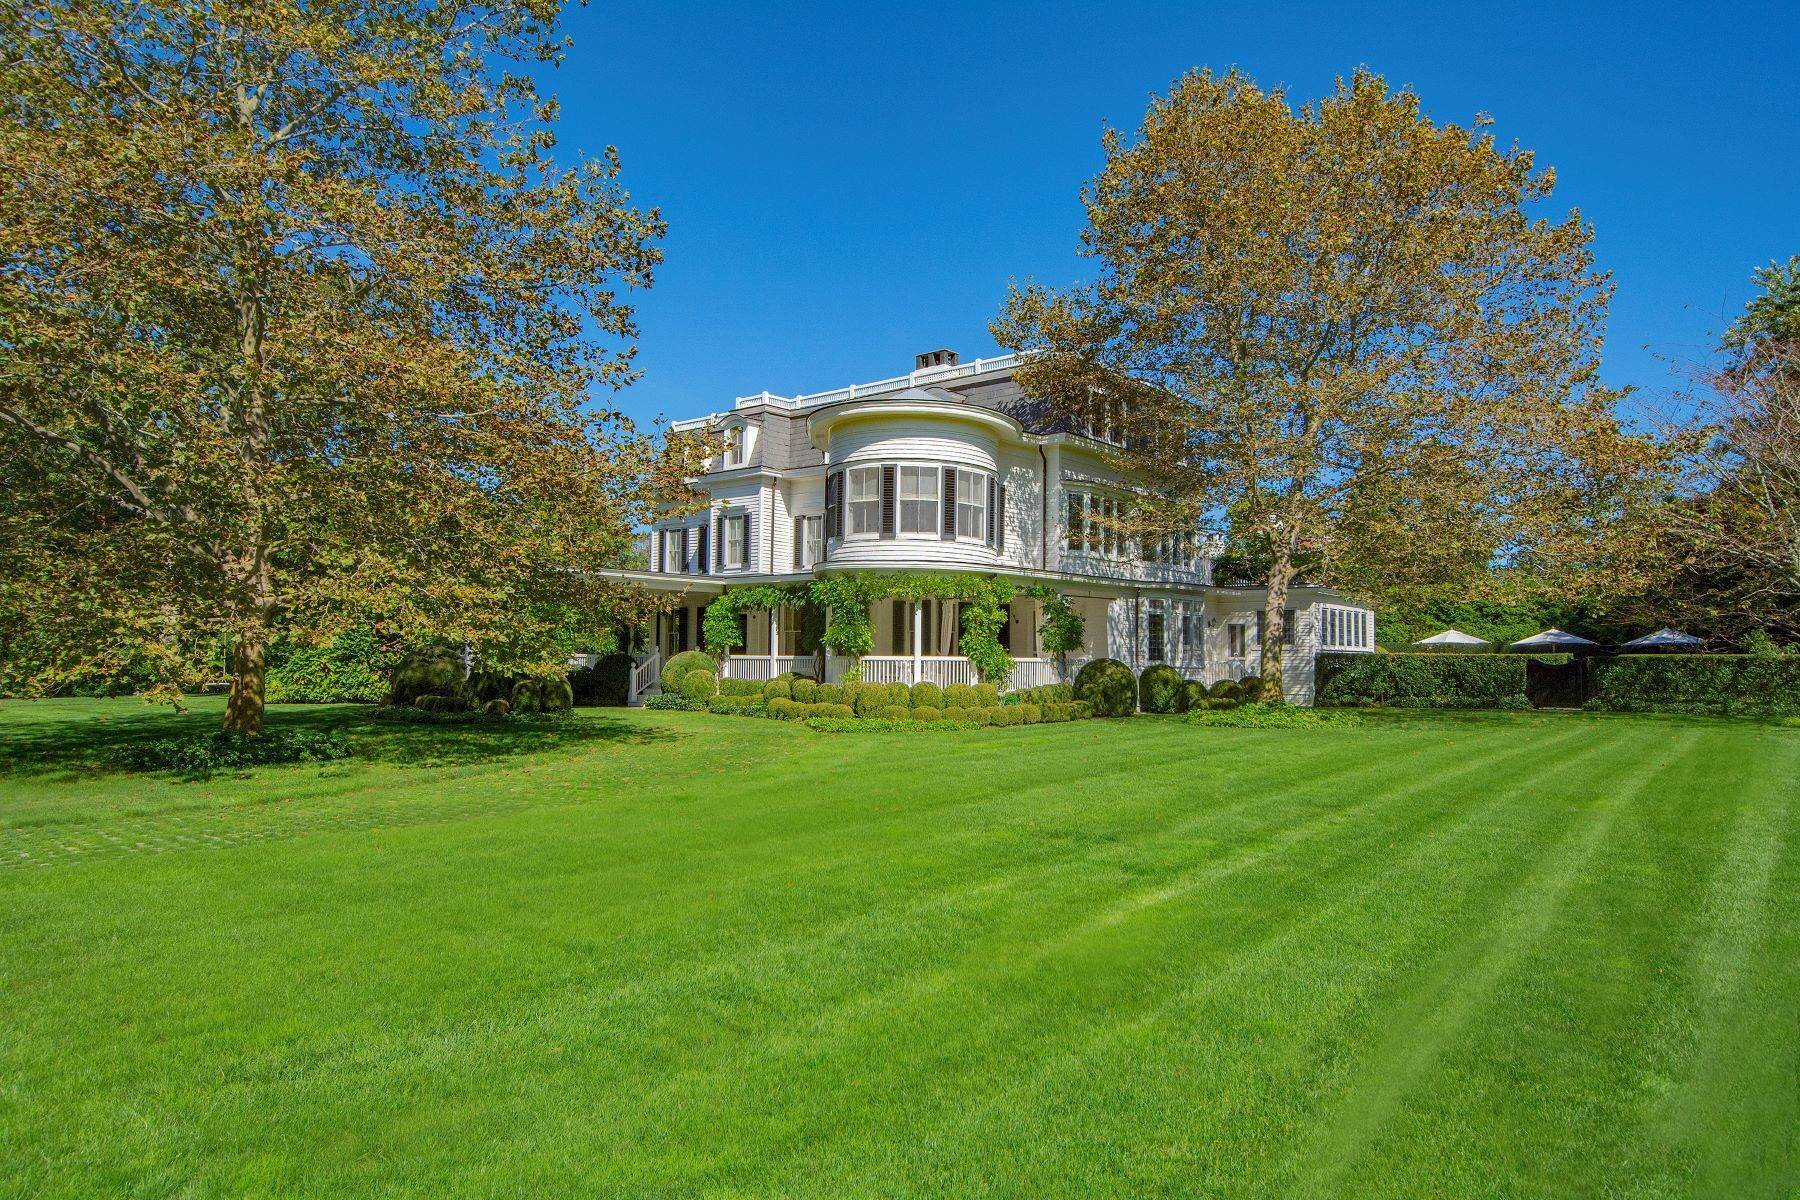 Single Family Homes for Active at Historic Southampton Village With Pool 172 South Main Street Southampton, New York 11968 United States